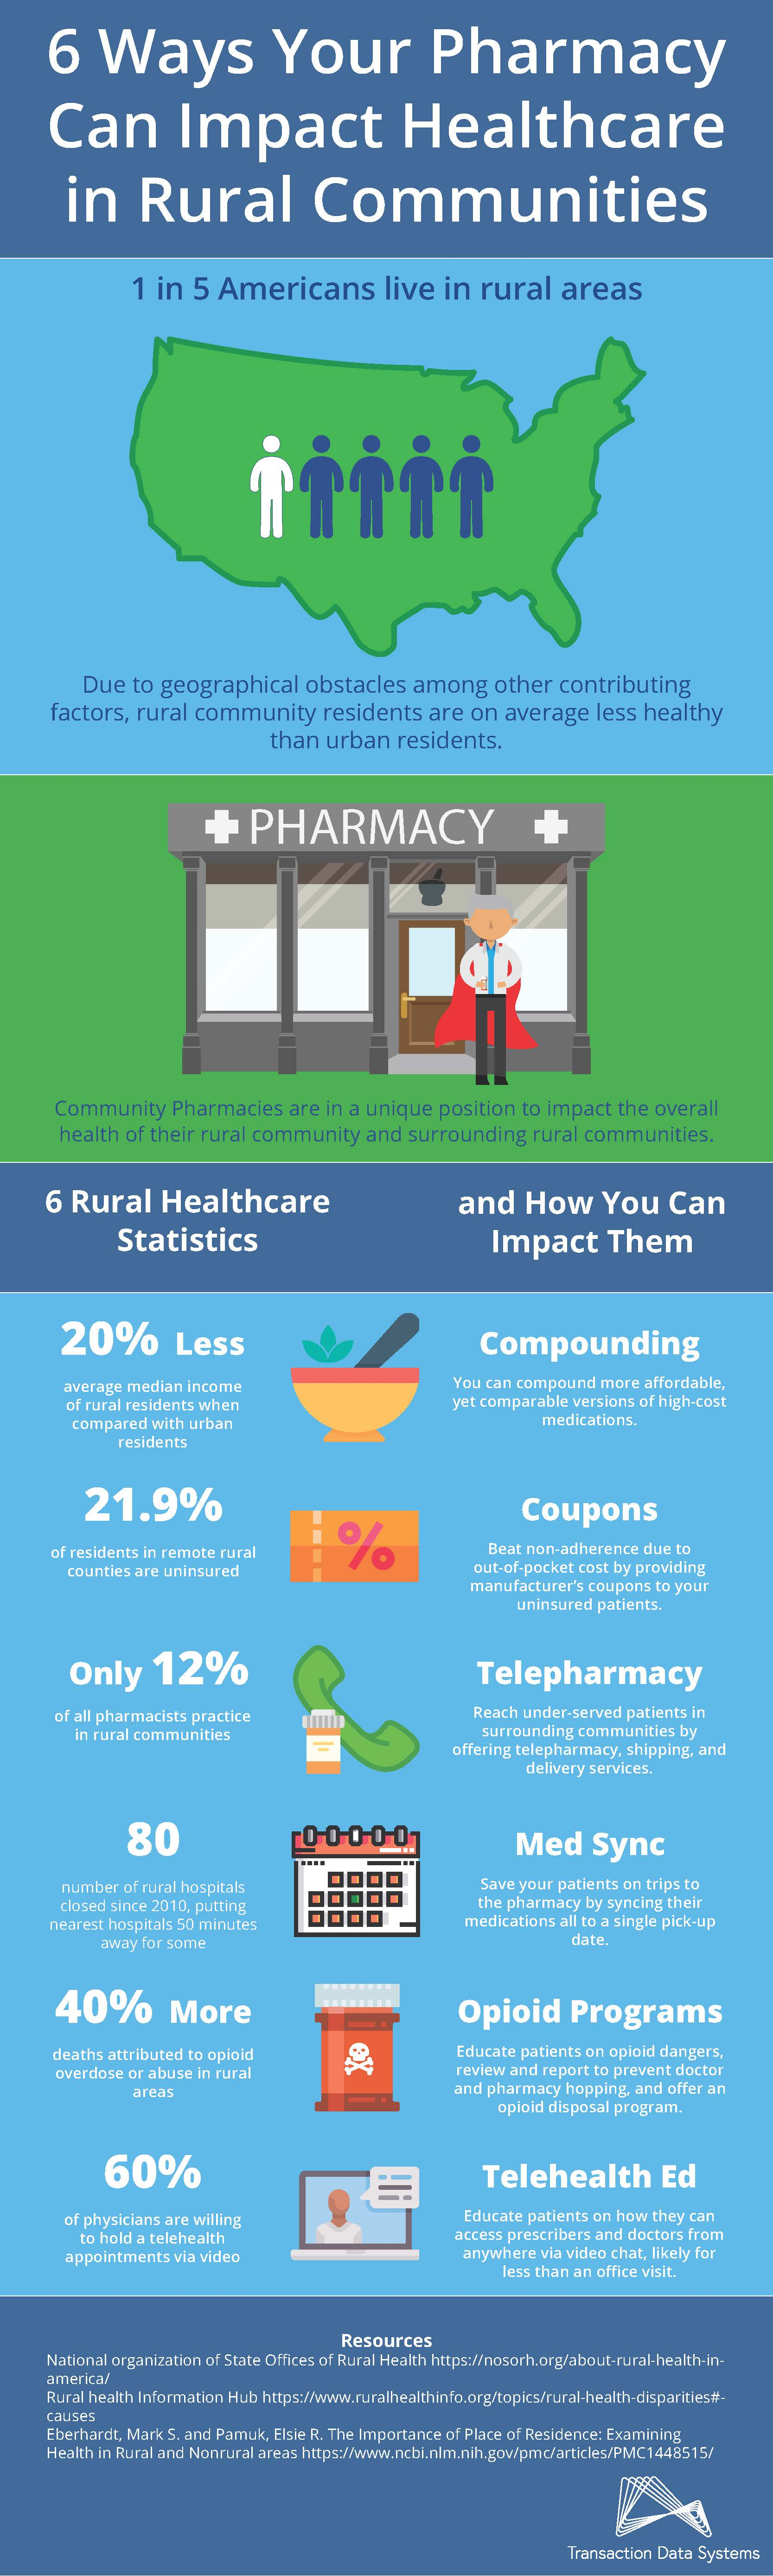 6 Ways Your Pharmacy Can Impact Healthcare in Rural Communities  1 in 5 Americans live in rural areas. Due to geographical obstacles among other contributing factors, rural community residents are on average less healthy than urban residents.  Community Pharmacies are in a unique position to impact the overall health of their rural community and surrounding rural communities.  6 Rural Healthcare Statistics and How You Can Impact Them 20% Less average median income of rural residents when compared with urban residents. Compounding You can compound more affordable, yet comparable versions of high-cost medications.  21.9% of residents in remote rural counties are uninsured. Coupons Beat non-adherence due to out-of-pocket cost by providing manufacturer's coupons to your uninsured patients.  Only 12% of all pharmacists practice in rural communities.  Telepharmacy Reach under-served patients in surrounding communities by offering telepharmacy, shipping, and delivery services. 80 number of rural hospitals closed since 2010, putting nearest hospitals 50 minutes away for some.  Med Sync Save your patients on trips to the pharmacy by syncing their medications all to a single pick-up date.  40% More deaths attributed to opioid overdose or abuse in rural areas. Opioid Programs Educate patients on opioid dangers, review and report to prevent doctor and pharmacy hopping, and offer and opioid disposal program. 60% of physicians are willing to hold a telehealth appointments via video.  Telehealth Ed Educate patients on how they can access prescribers and doctors from anywhere via video chat, likely for less than an office visit.